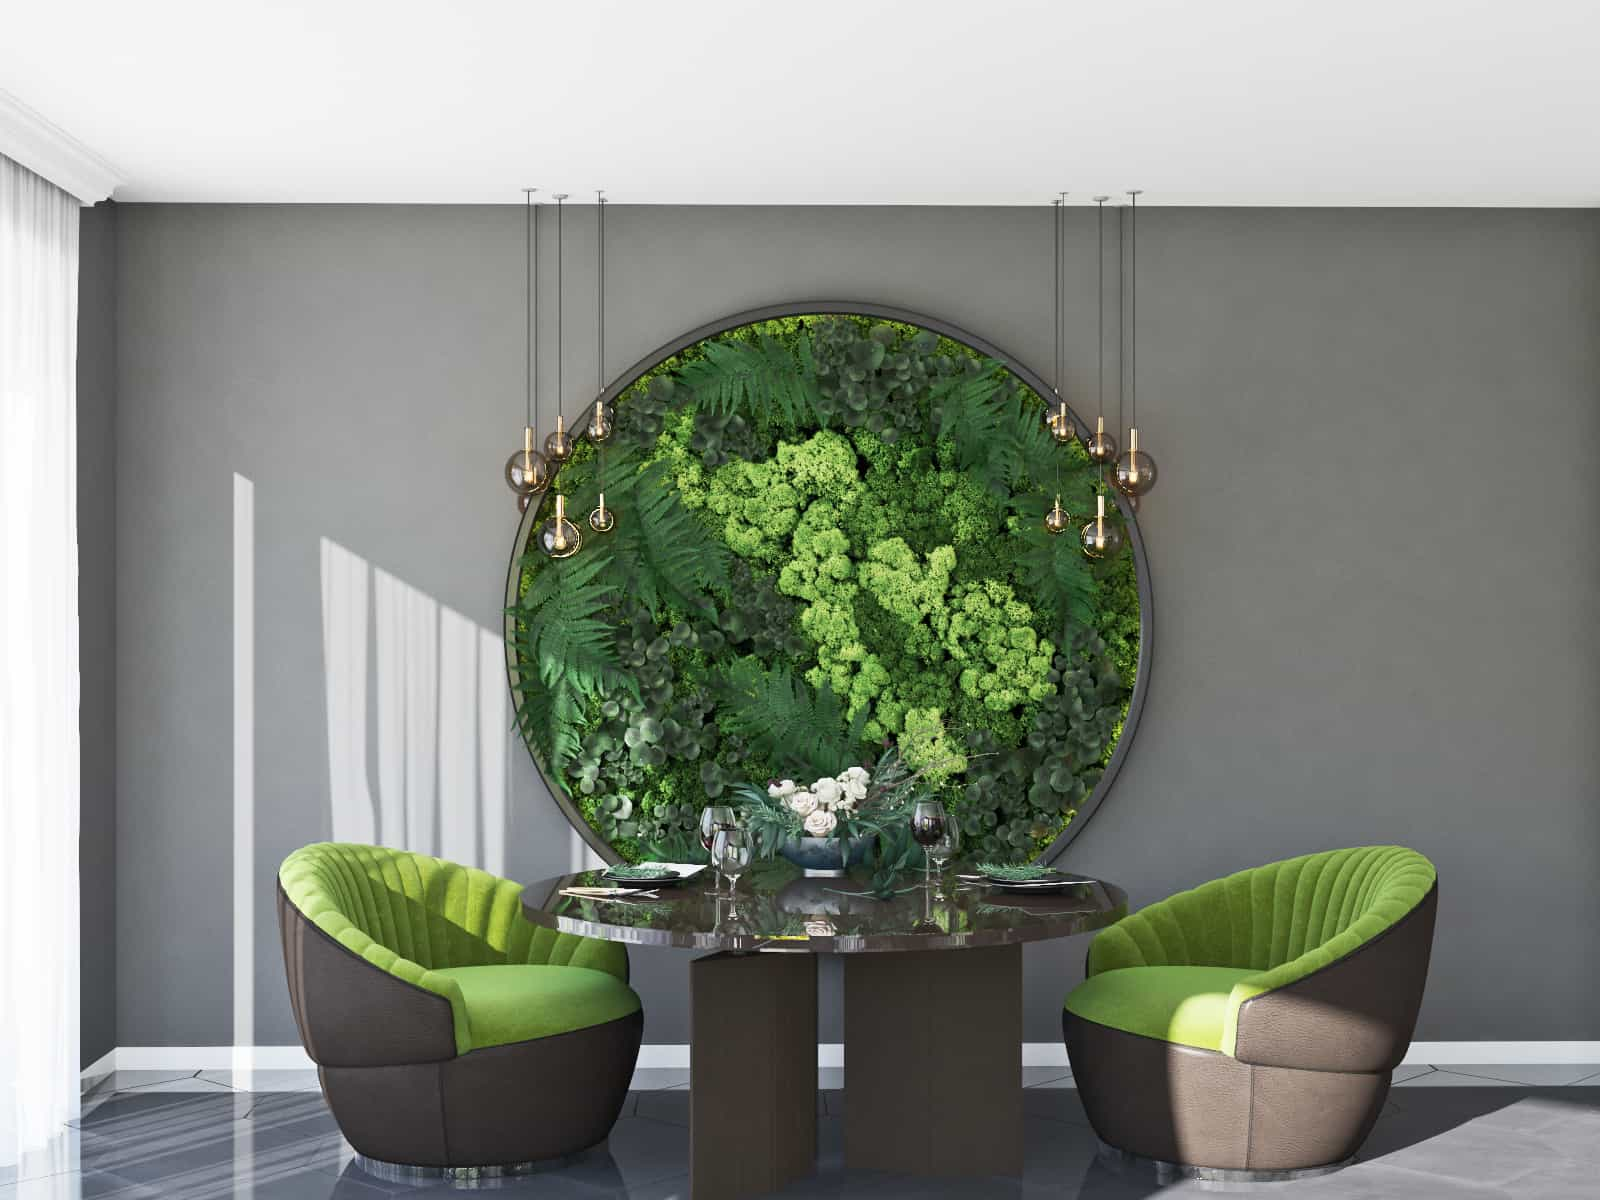 Living Room Trends 2021: 12 Fresh and Unique Ideas